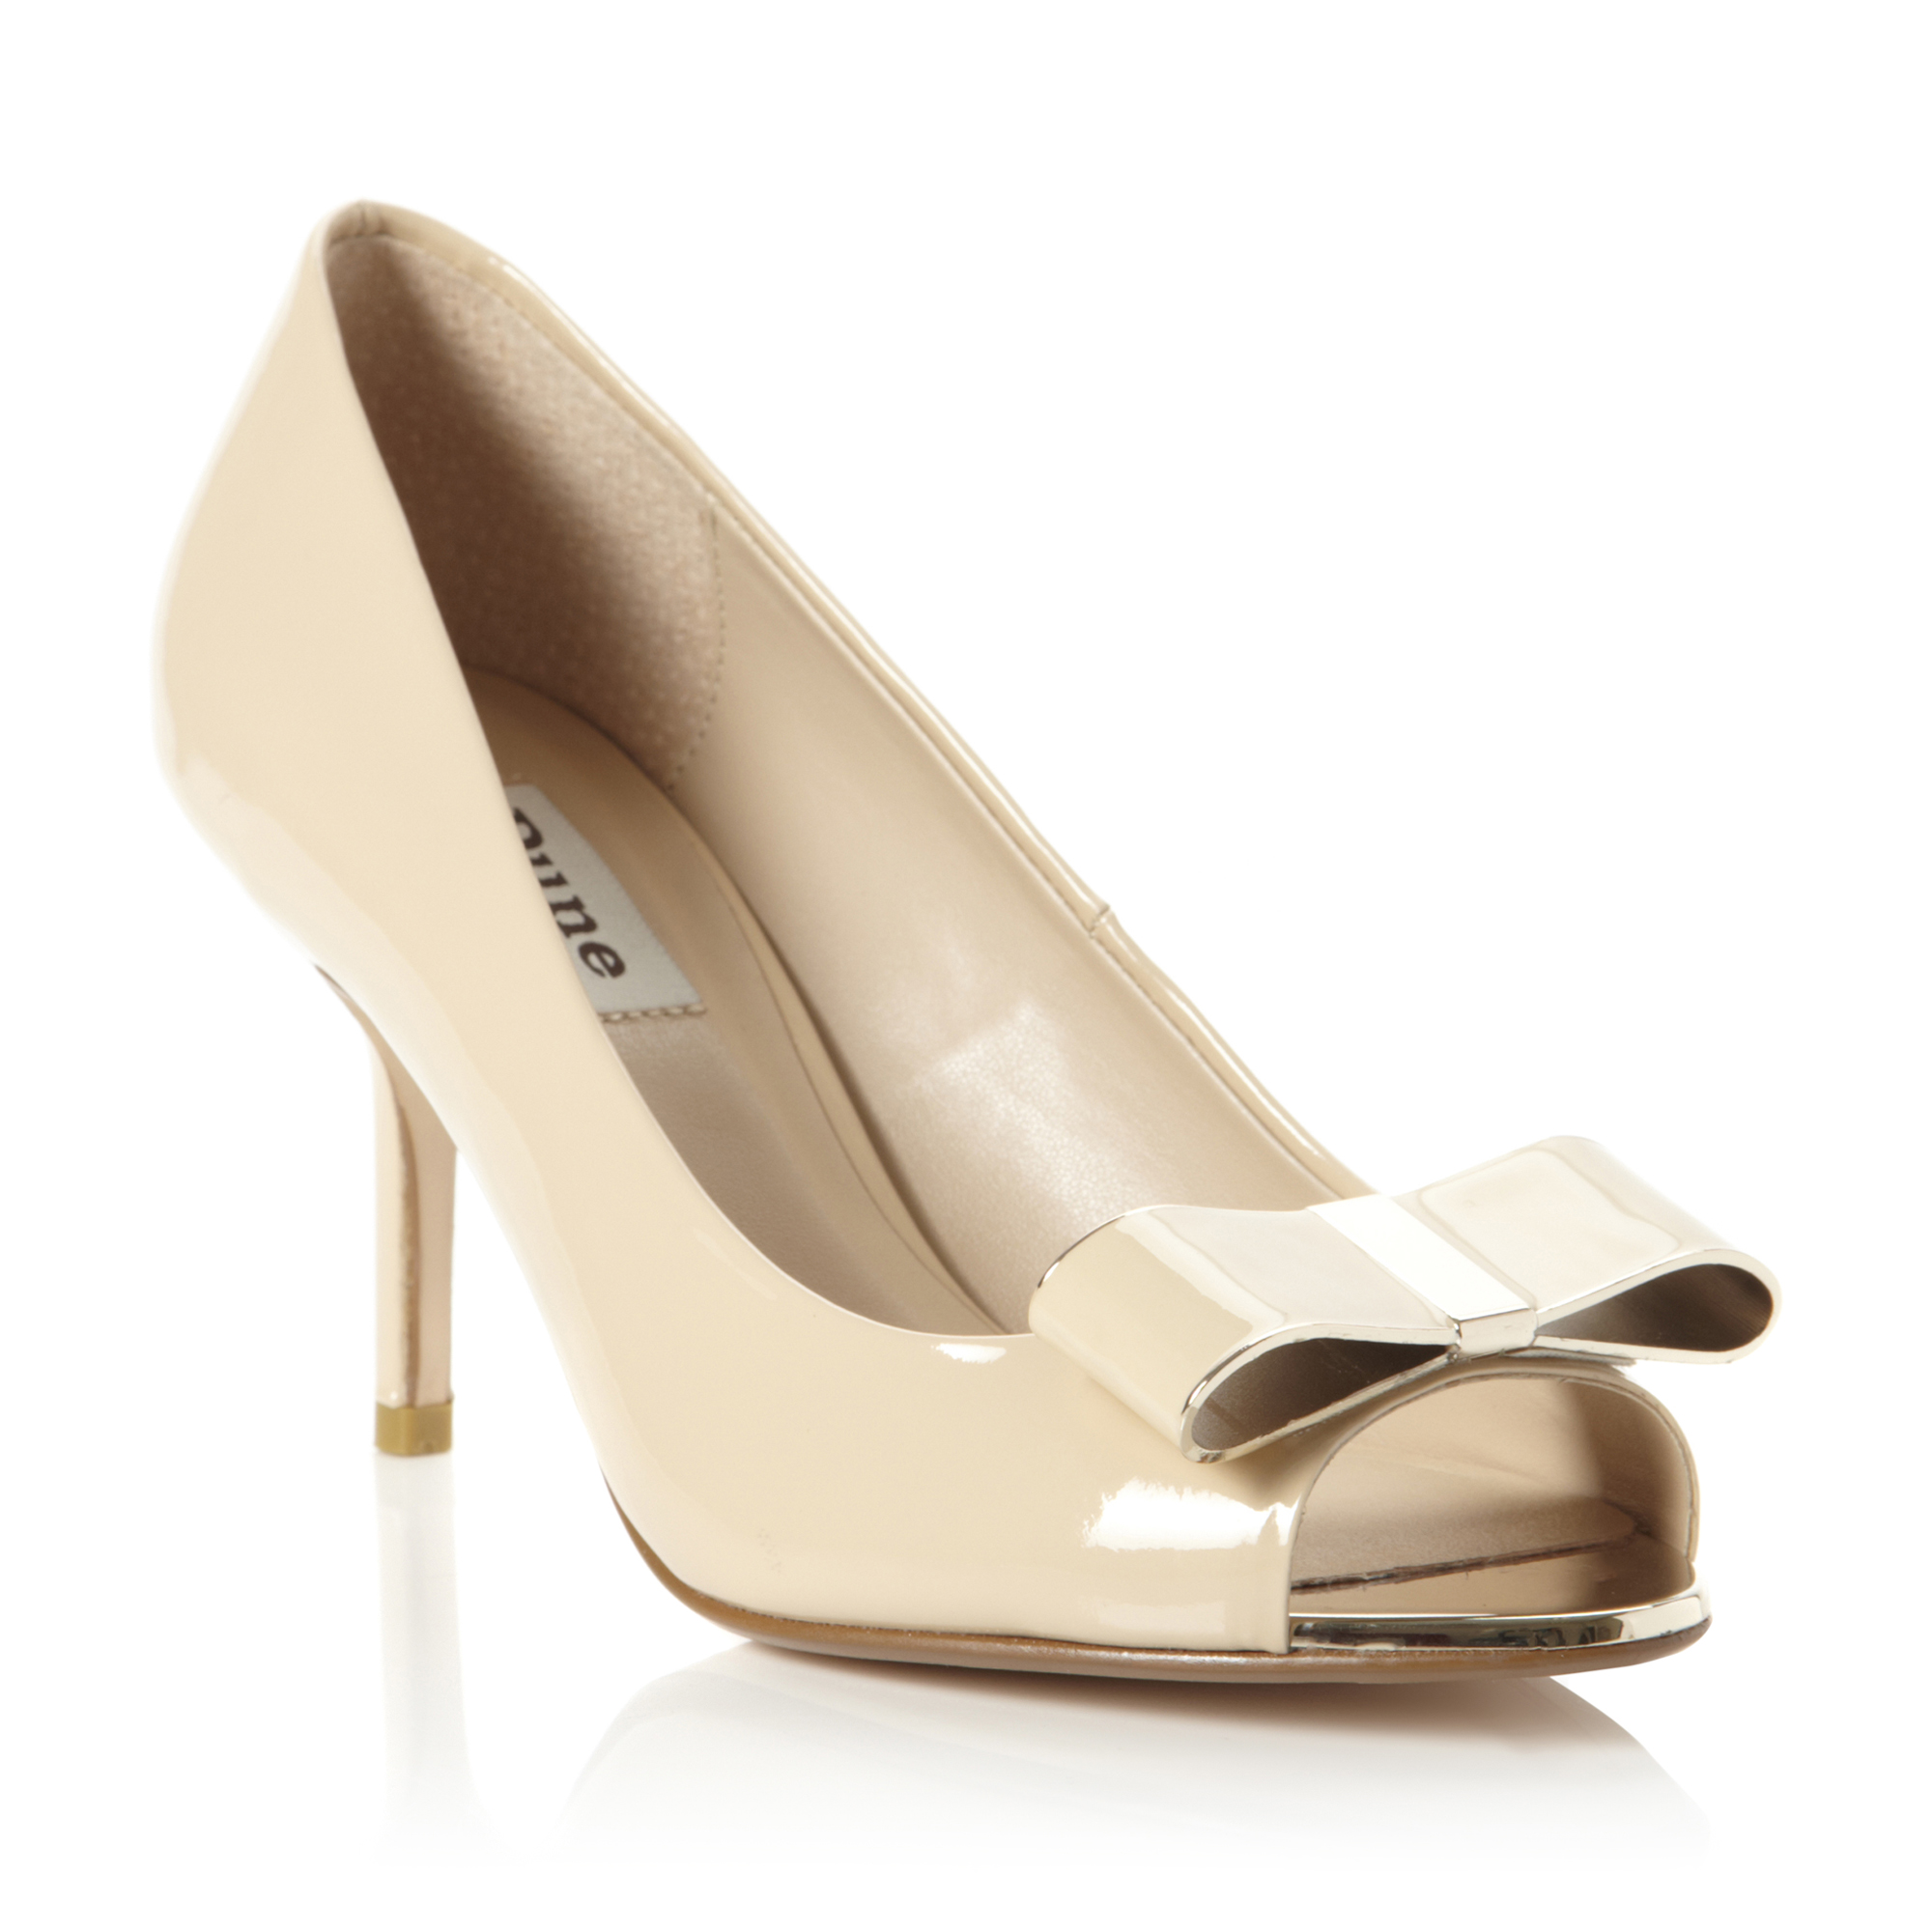 DUNE-LADIES-DEMURE-WOMENS-NUDE-PEEP-TOE-STILETTO-HEEL-BOW-COURT-SHOES-SIZE-3-8